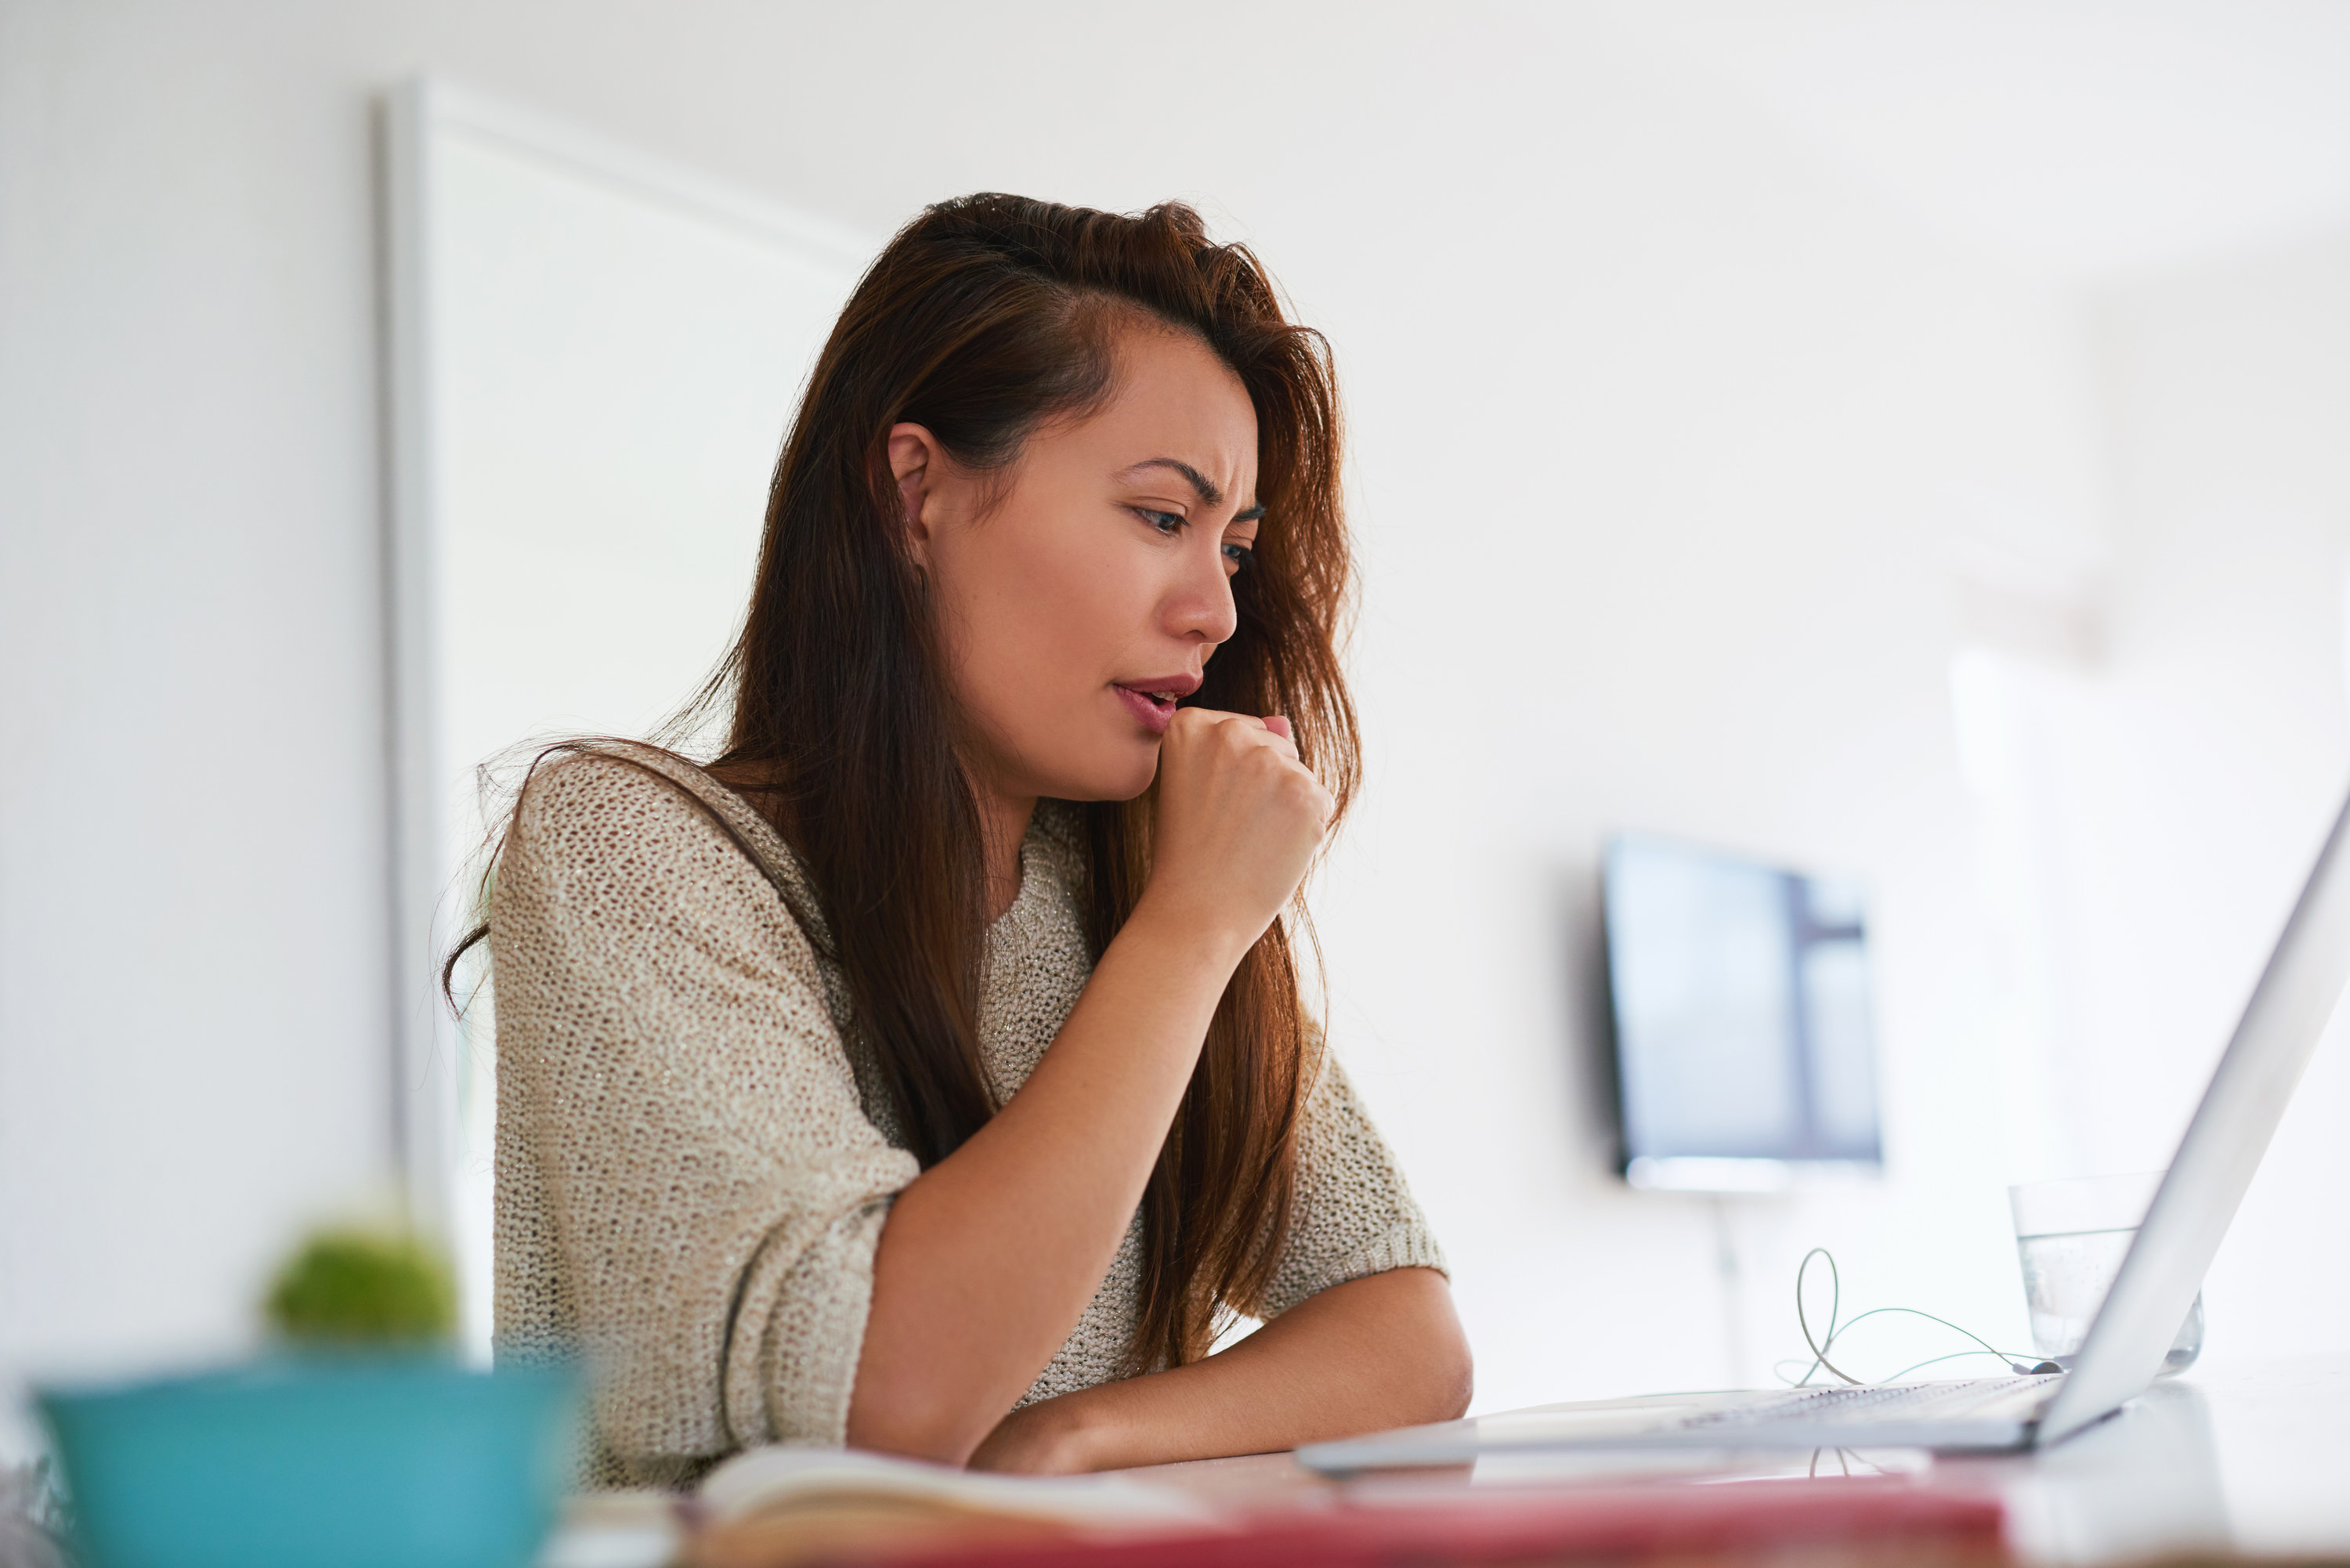 Person coughing and choking in front of a laptop